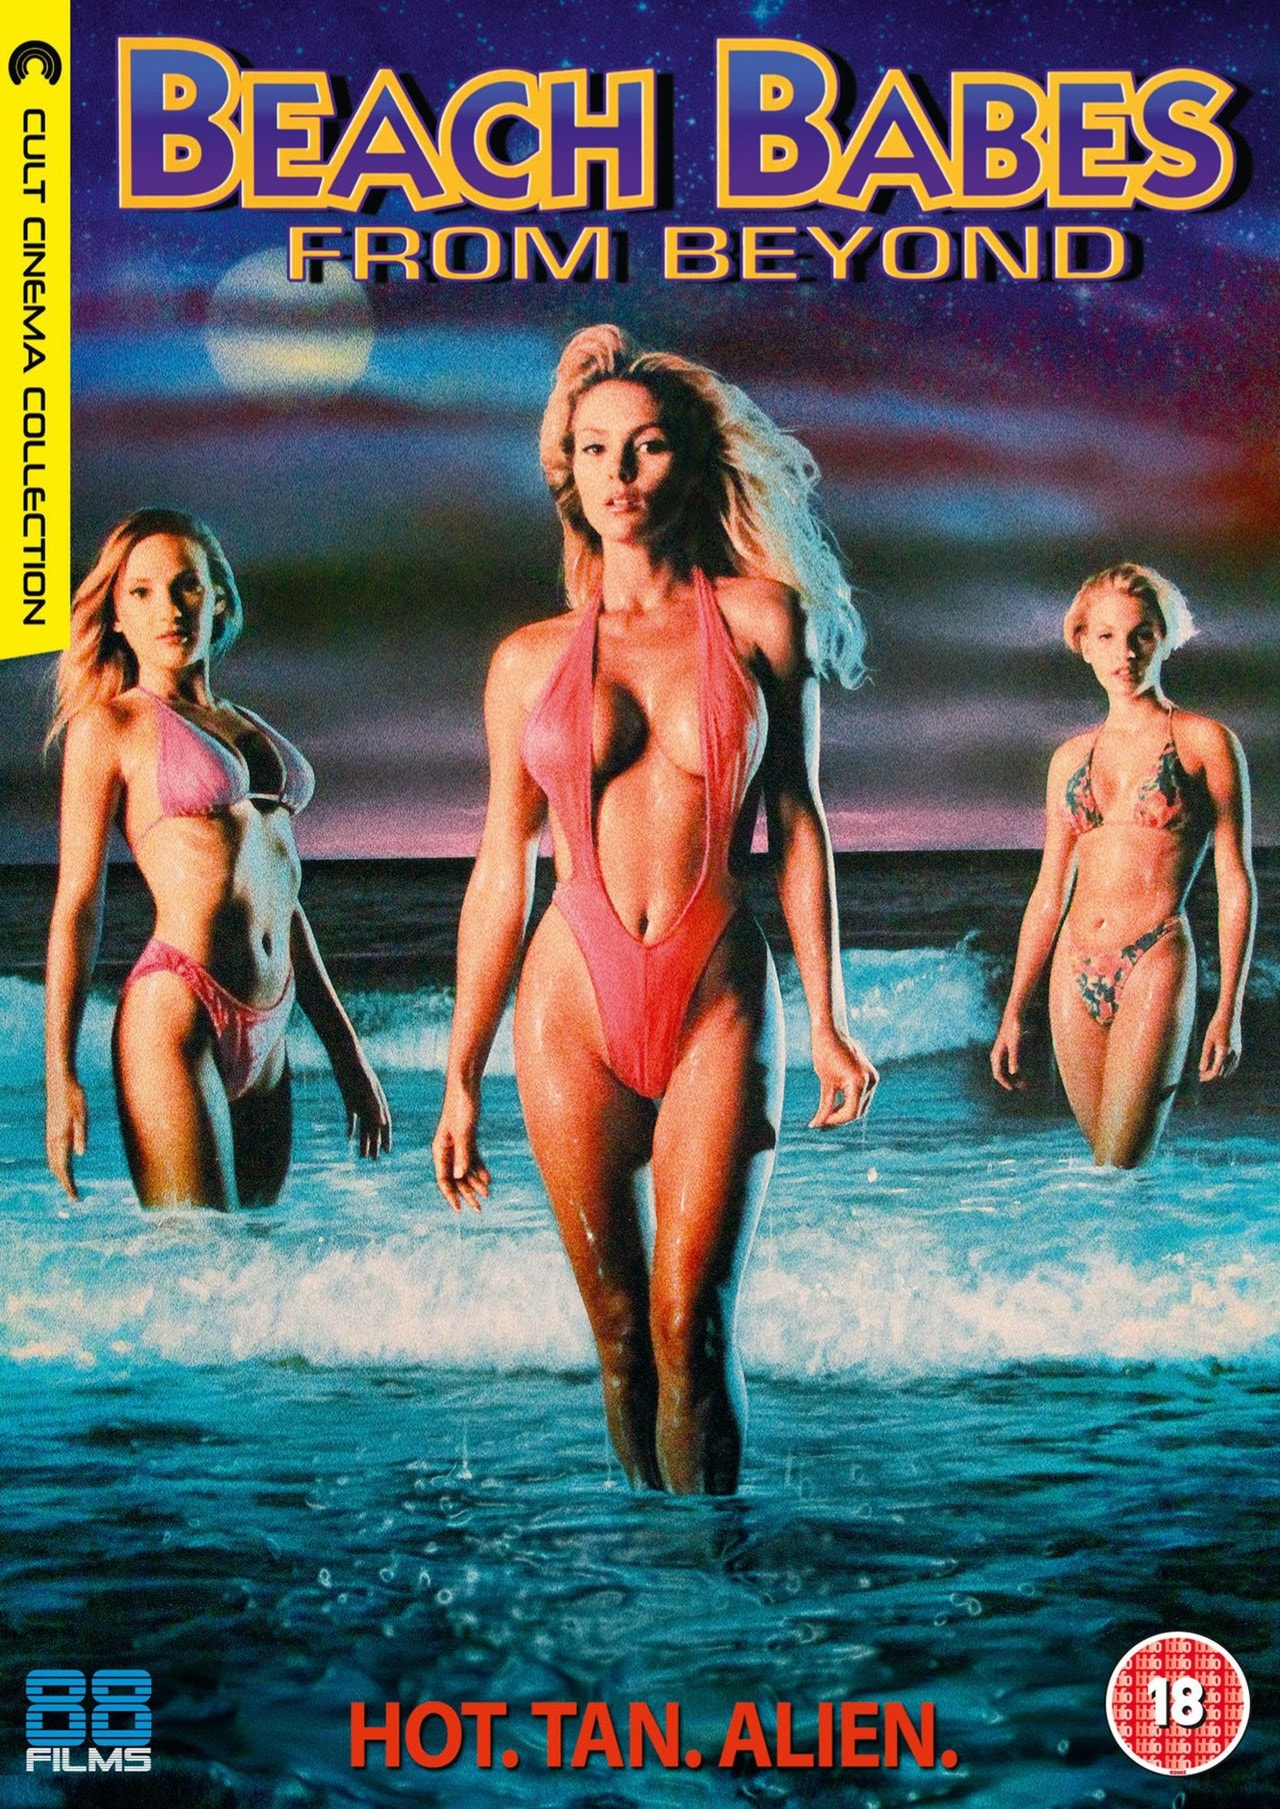 Beach Babes from Beyond - 1